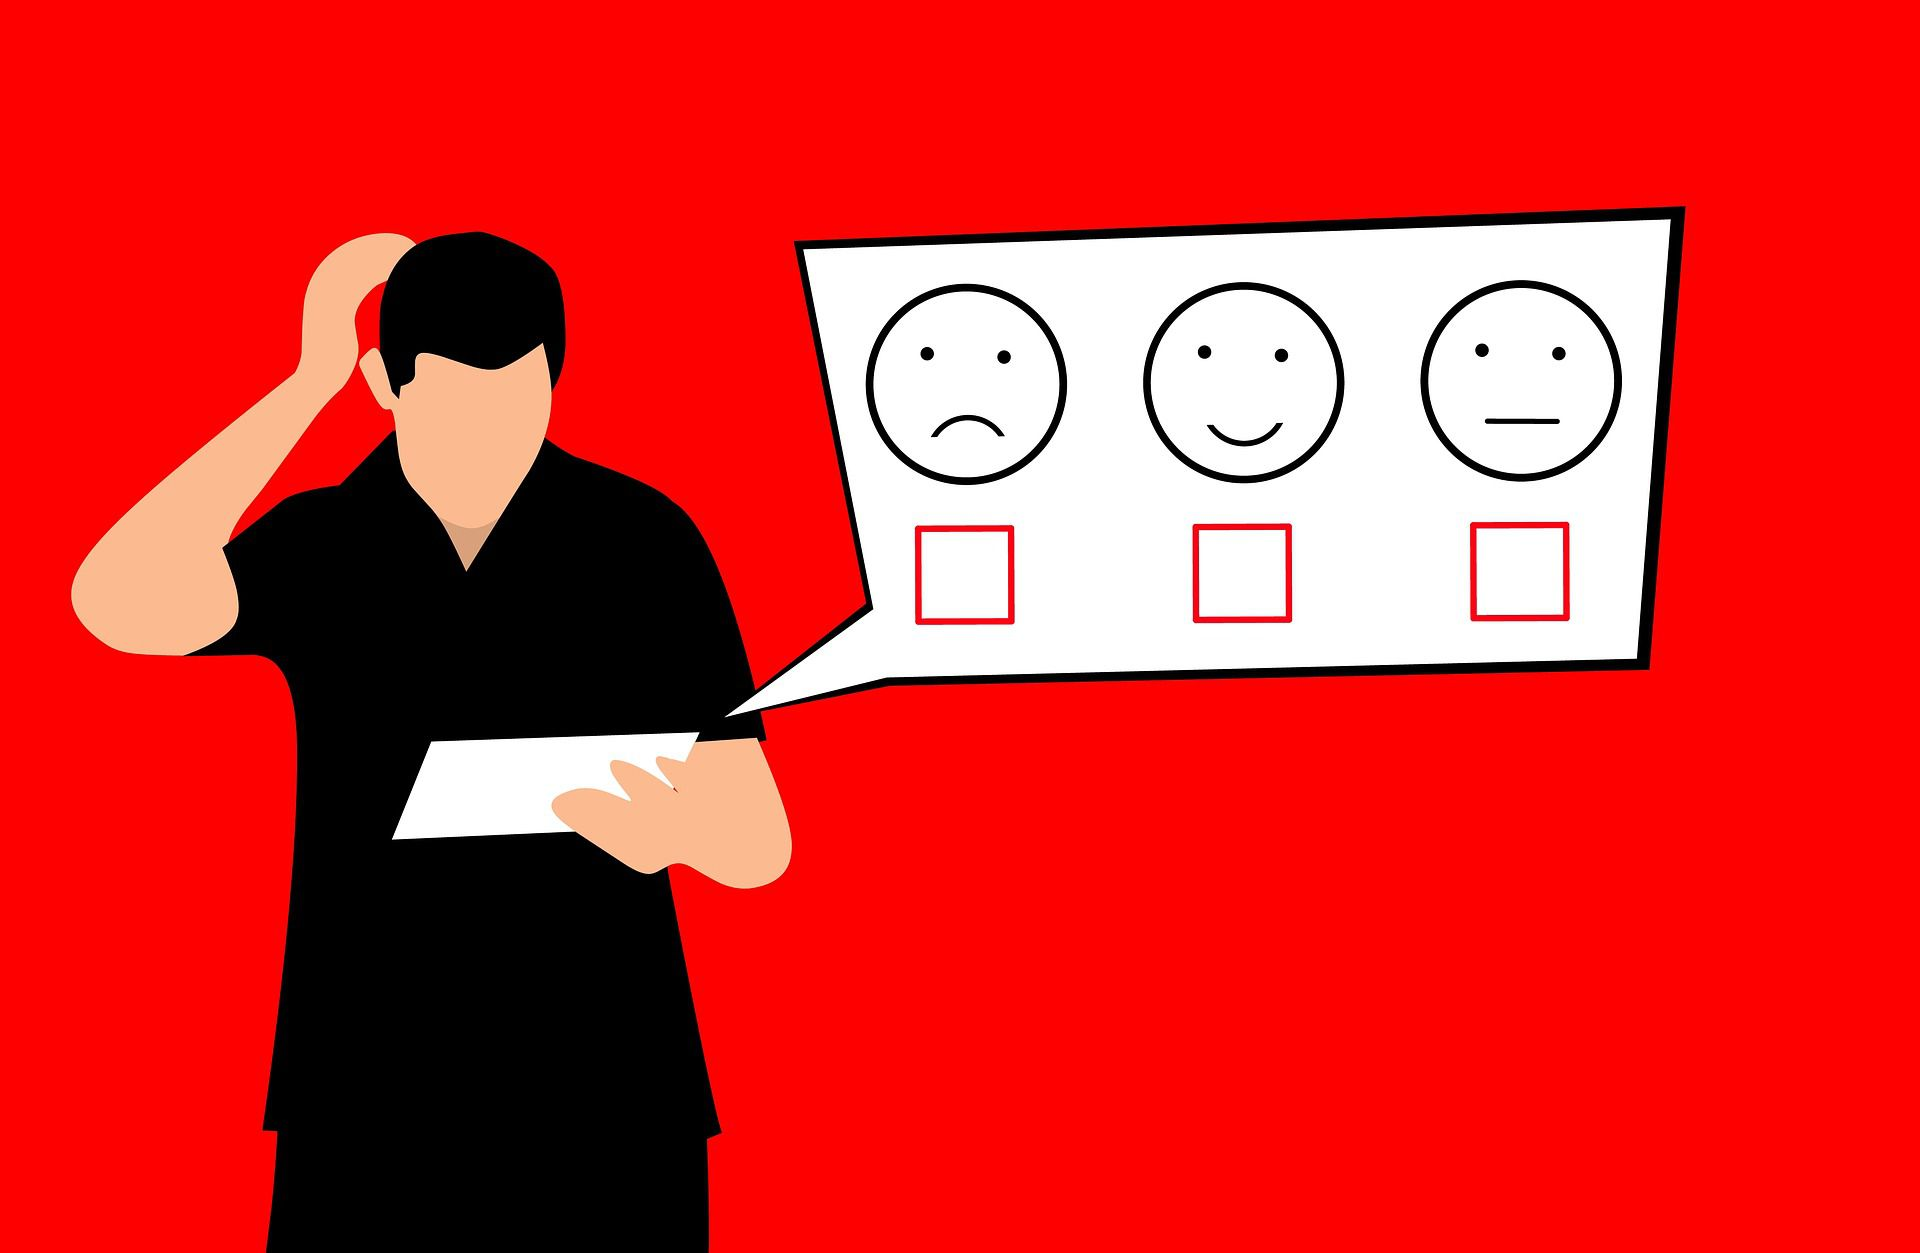 An illustration of someone filling out a survey.